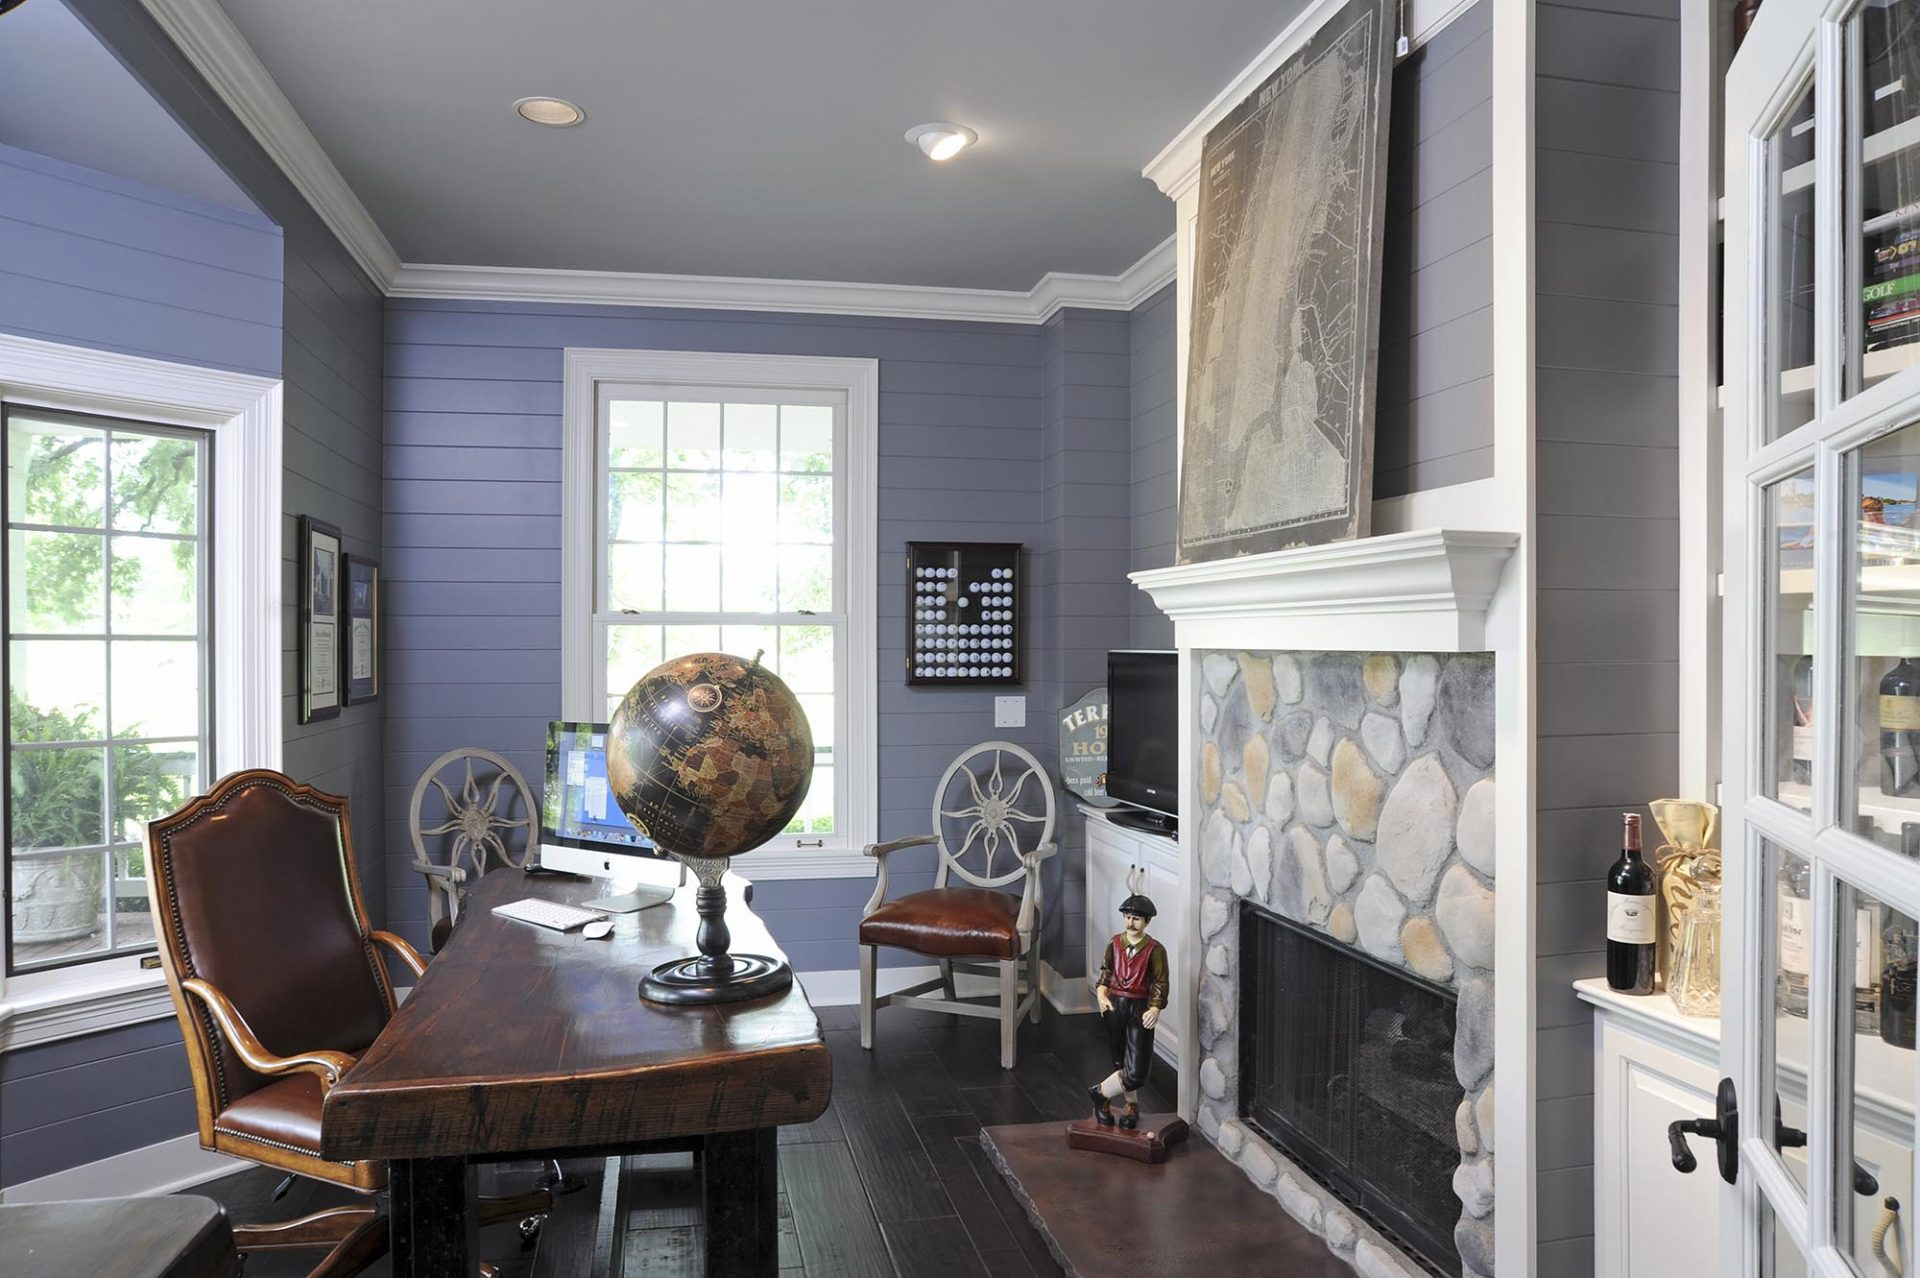 Office, Westerville, Dave Fox, Remodel, stone fireplace, trim, wood flooring, shiplap